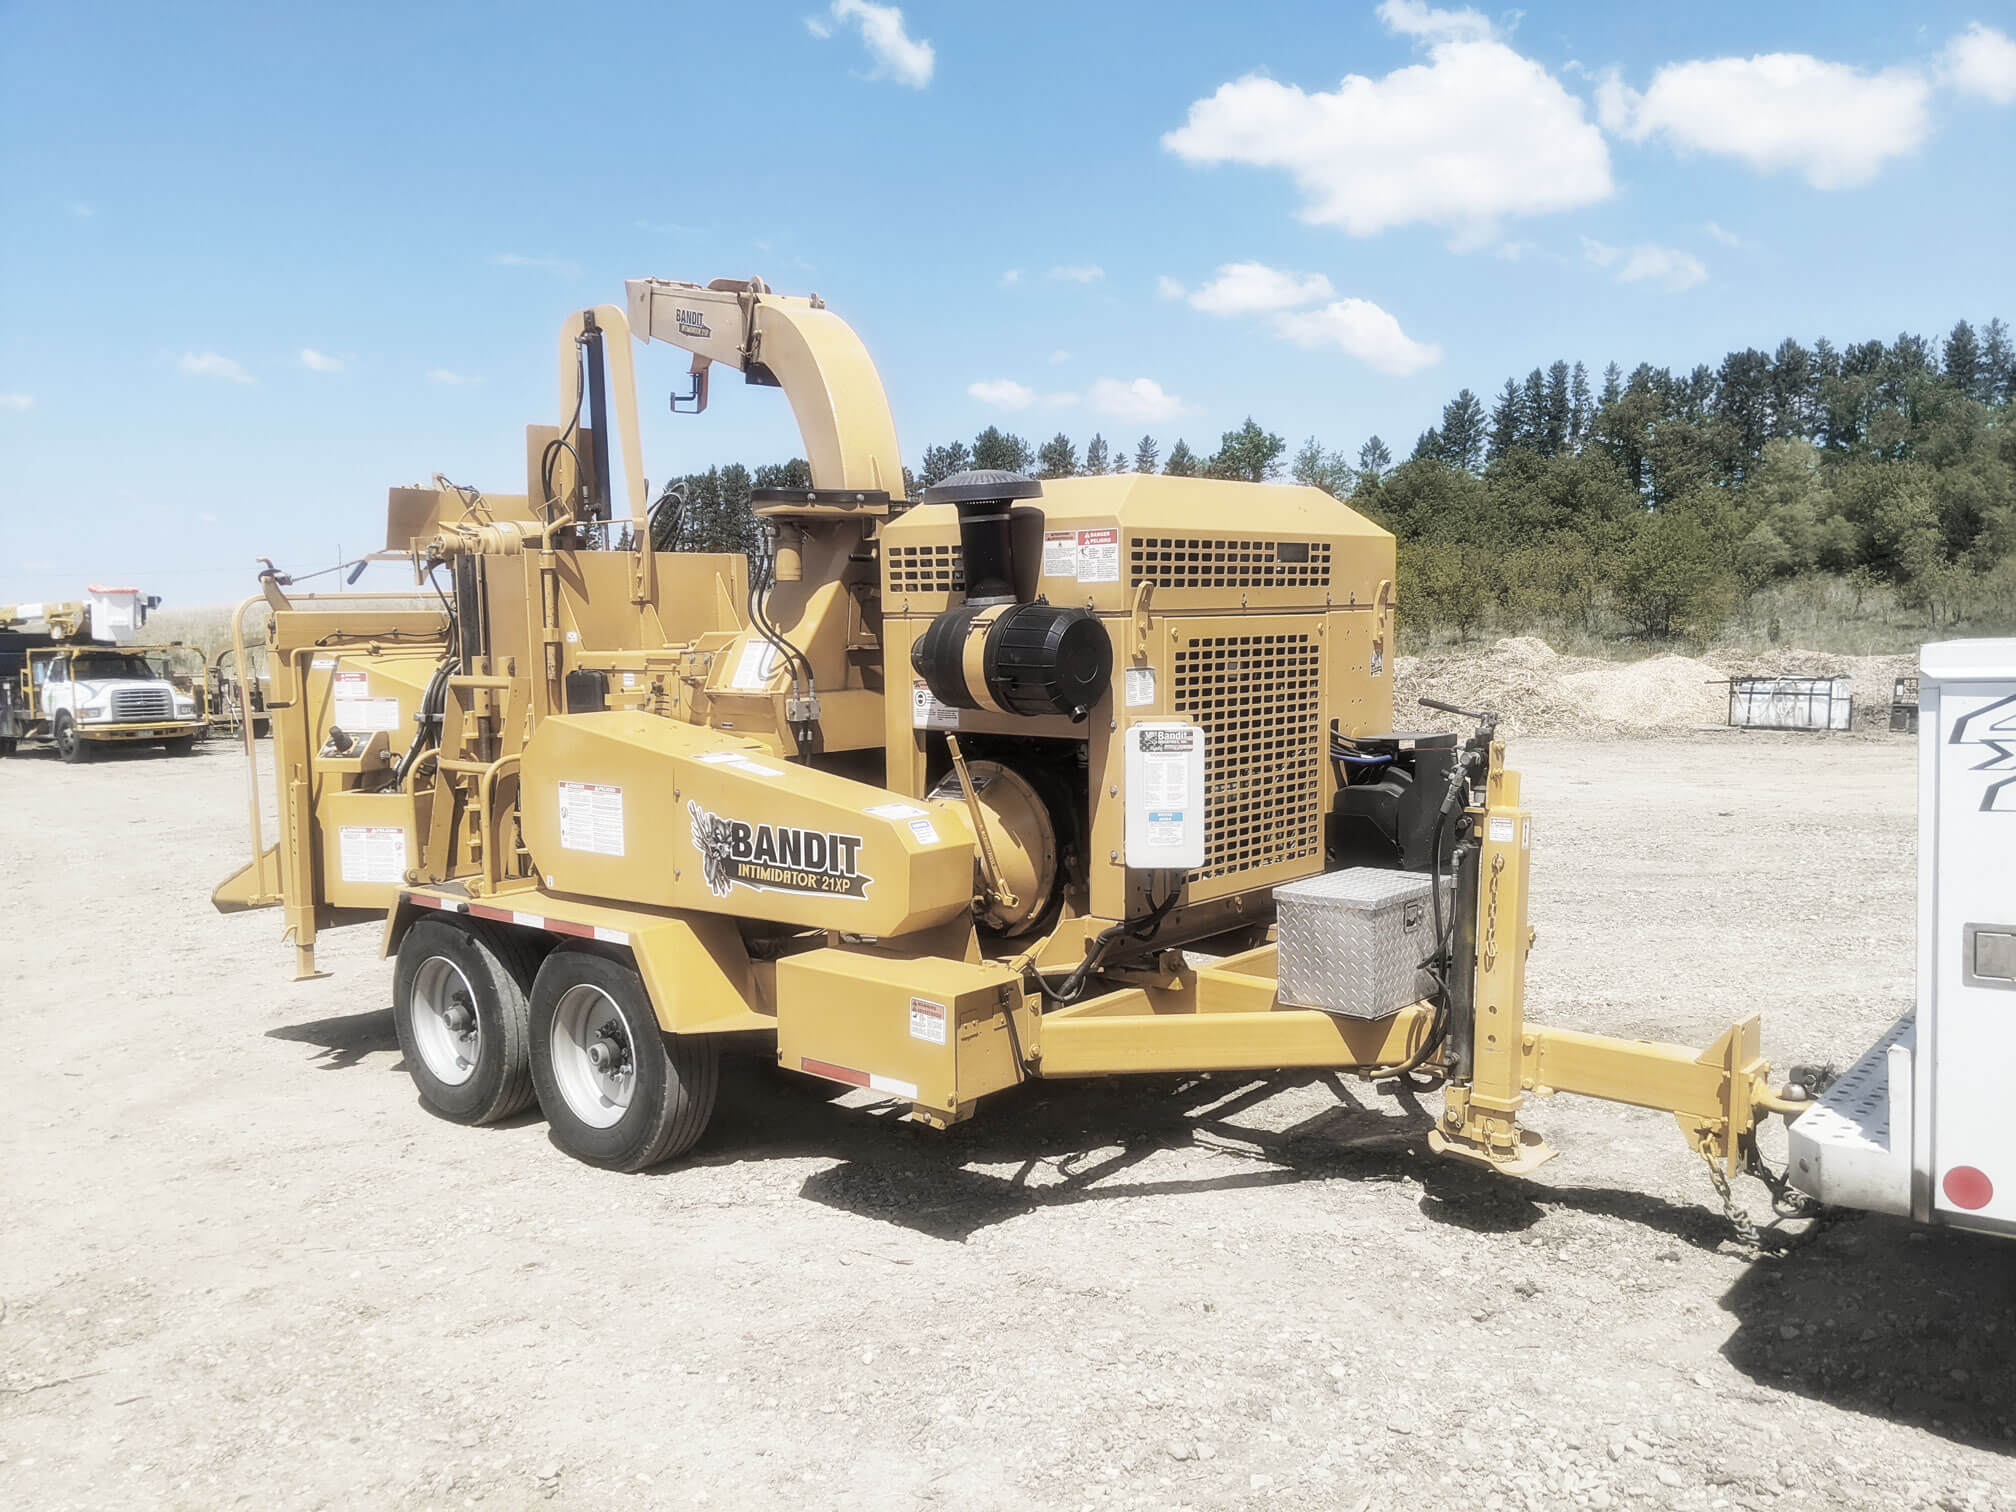 Yellow Bandit 21 XP Wood Chipper parked on gravel lot. Commercial tree equipment that allows for quick, easy removal of trees